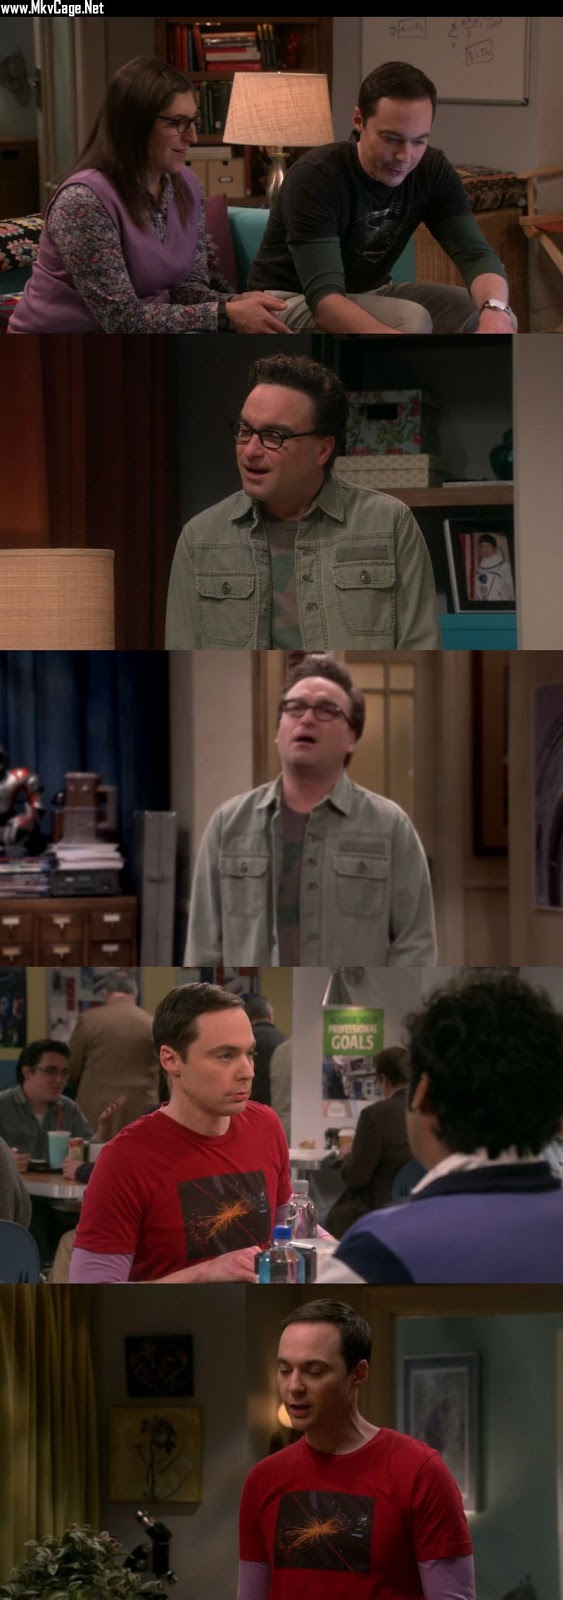 The Big Bang Theory S06E08 HDTVRip 720p